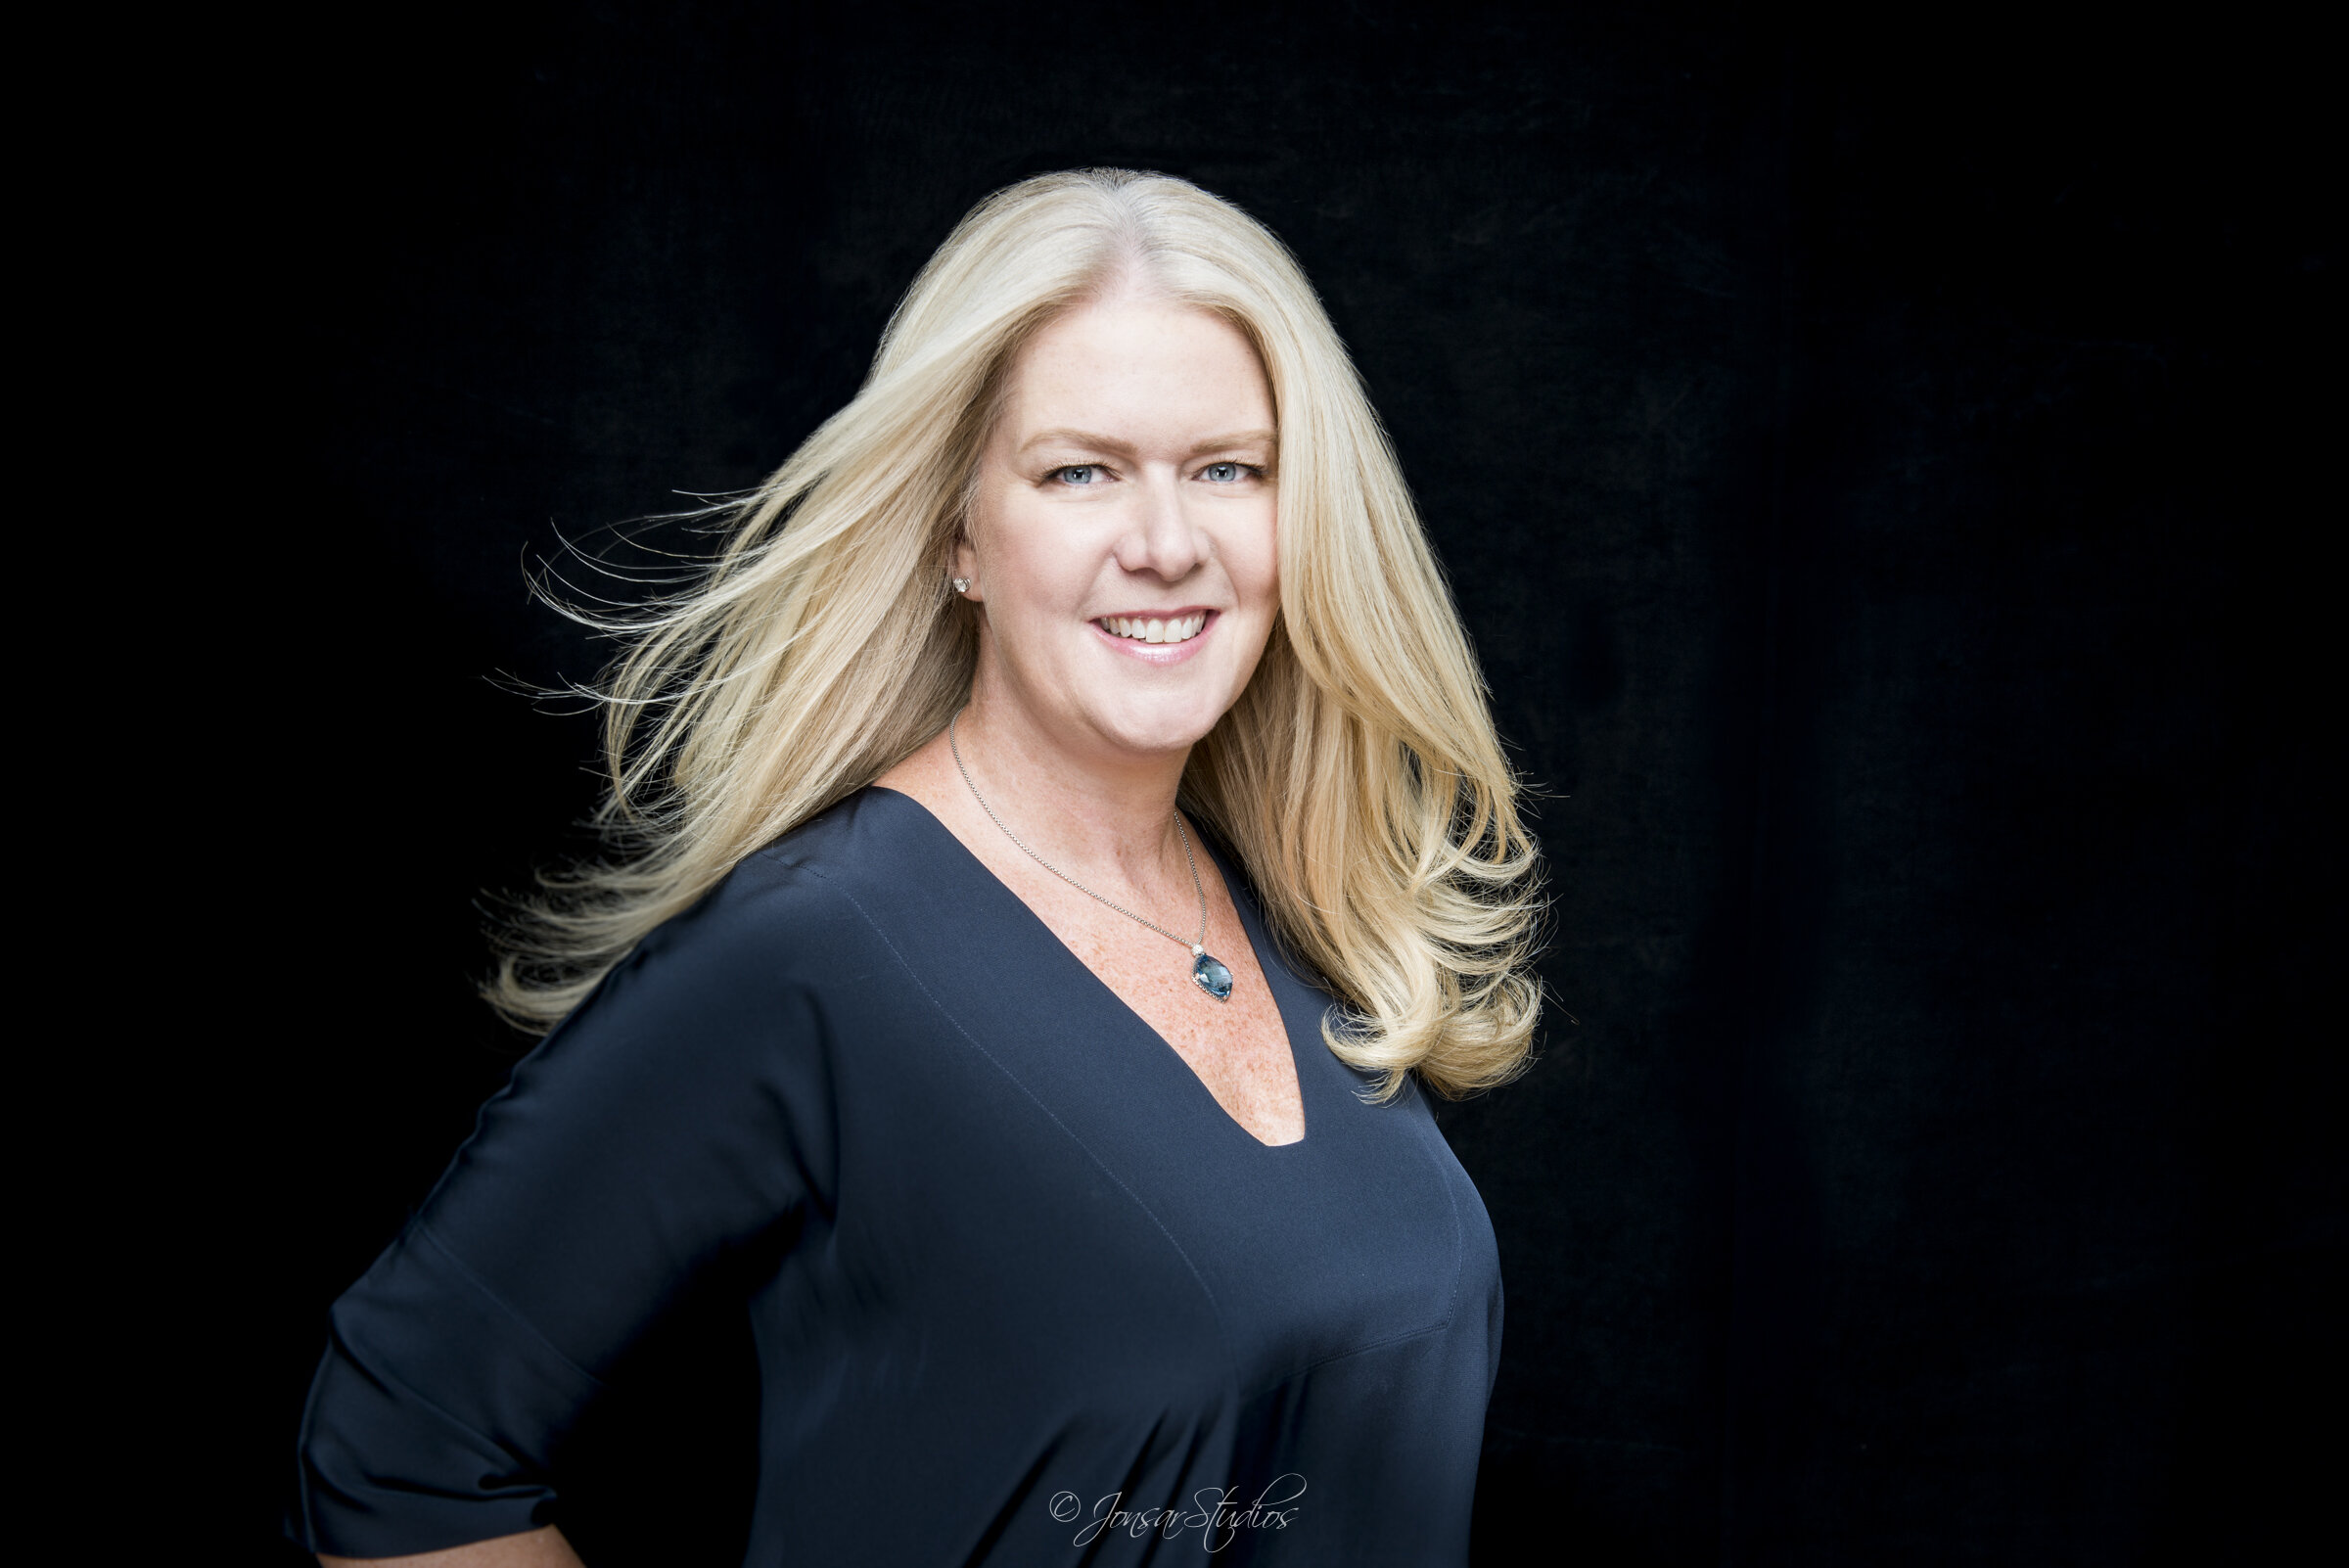 Color corporate portrait of blonde woman on black background